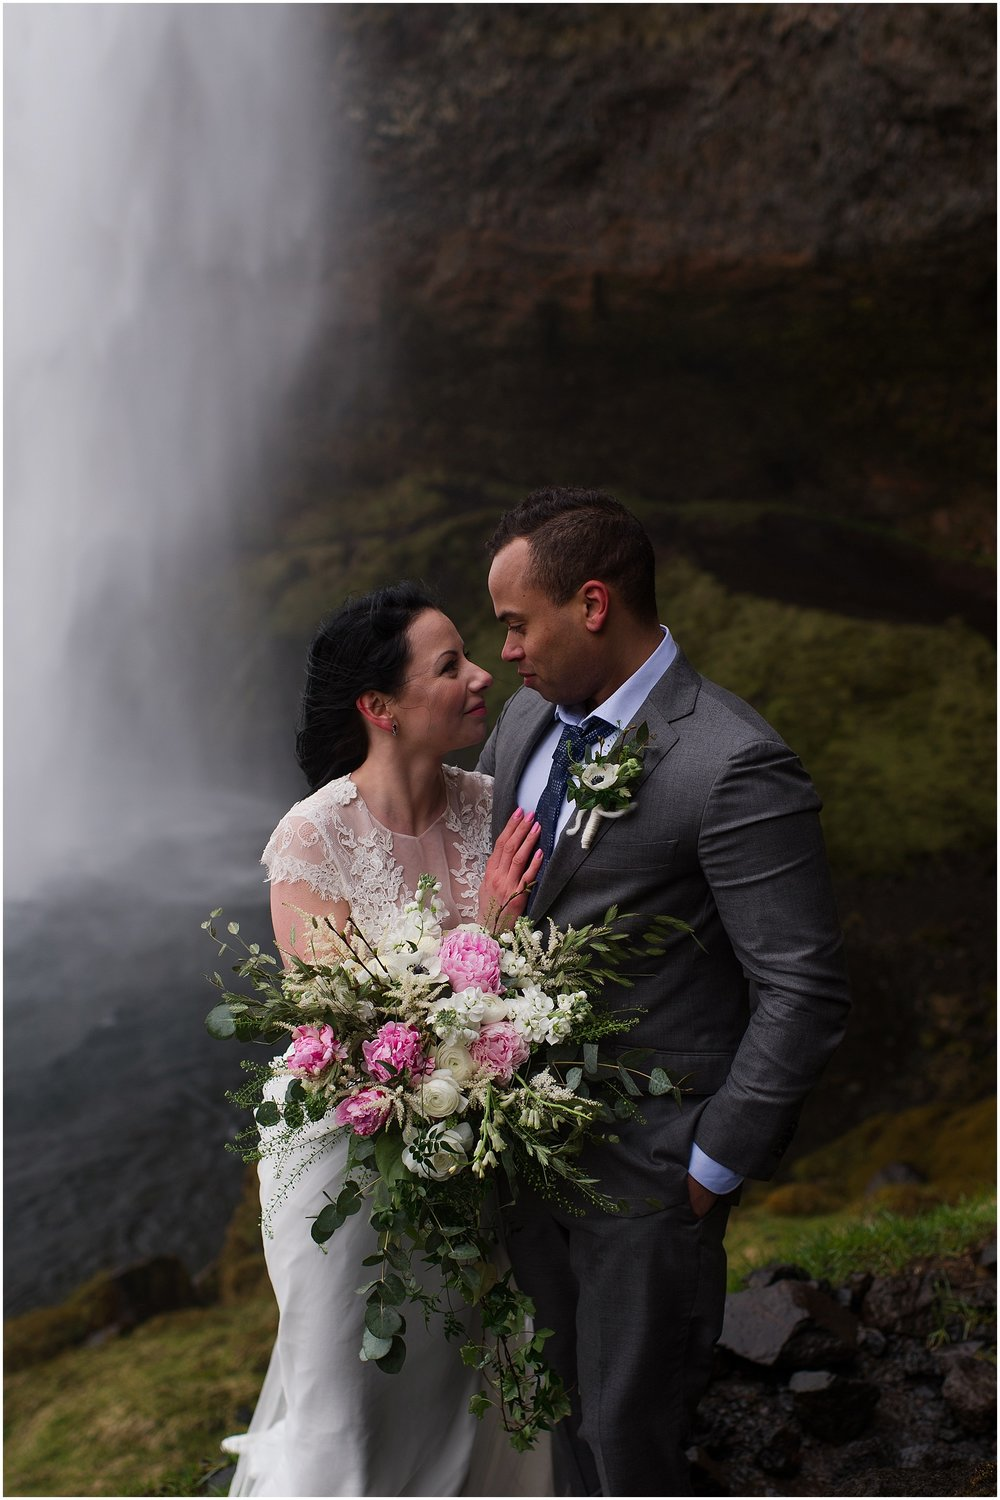 Hannah Leigh Photography Seljalandsfoss Iceland Elopement_2589.jpg